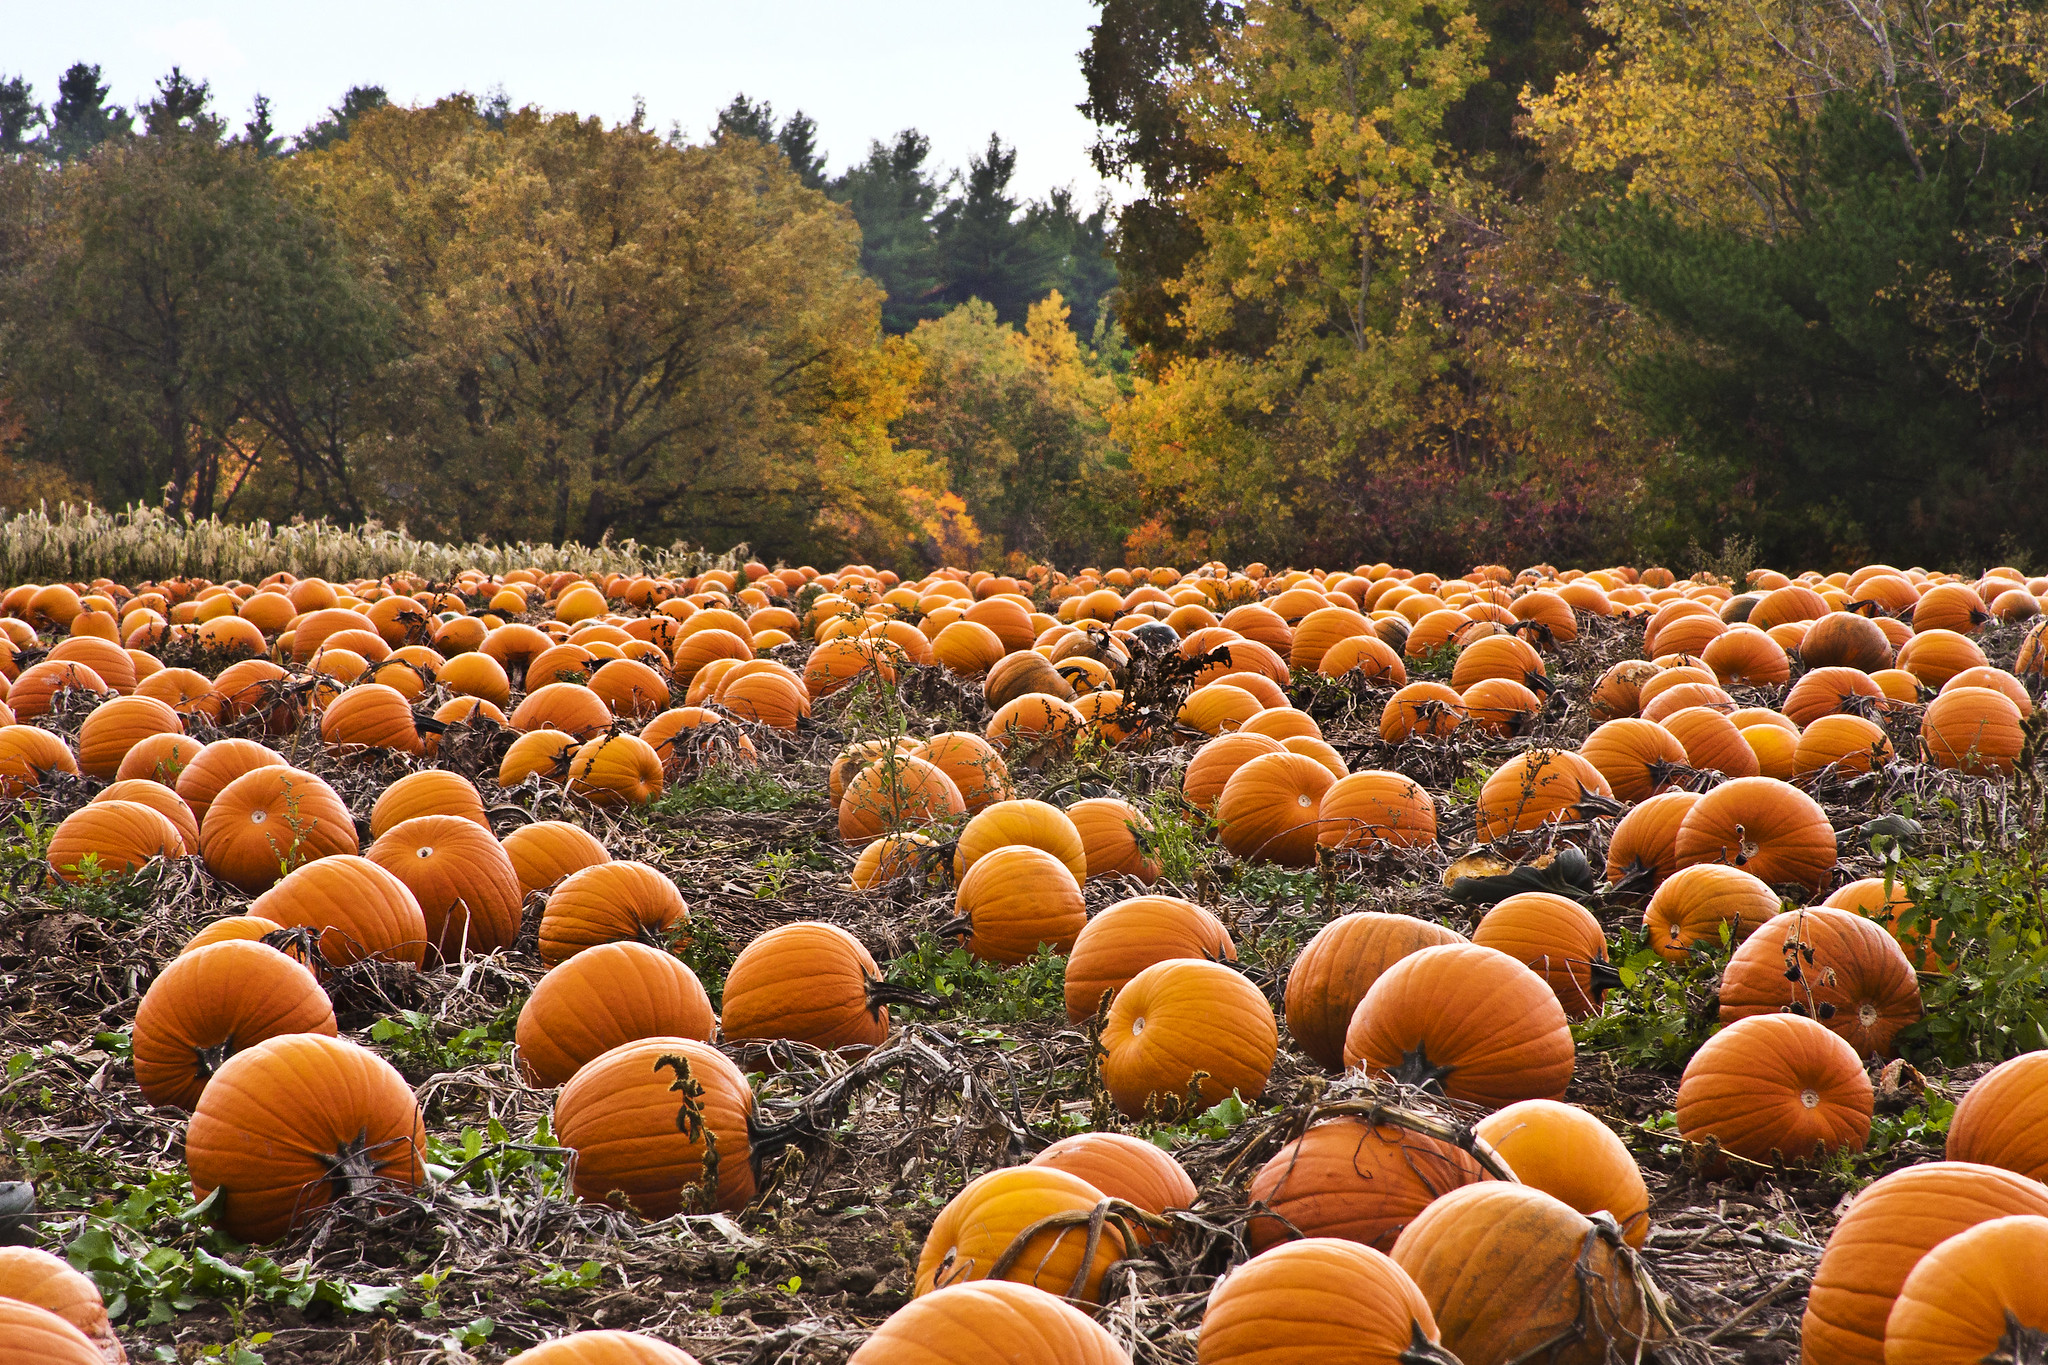 pumpkin patch - Photo Credit: liz west via Flickr, used unmodified under CC BY 2.0 license